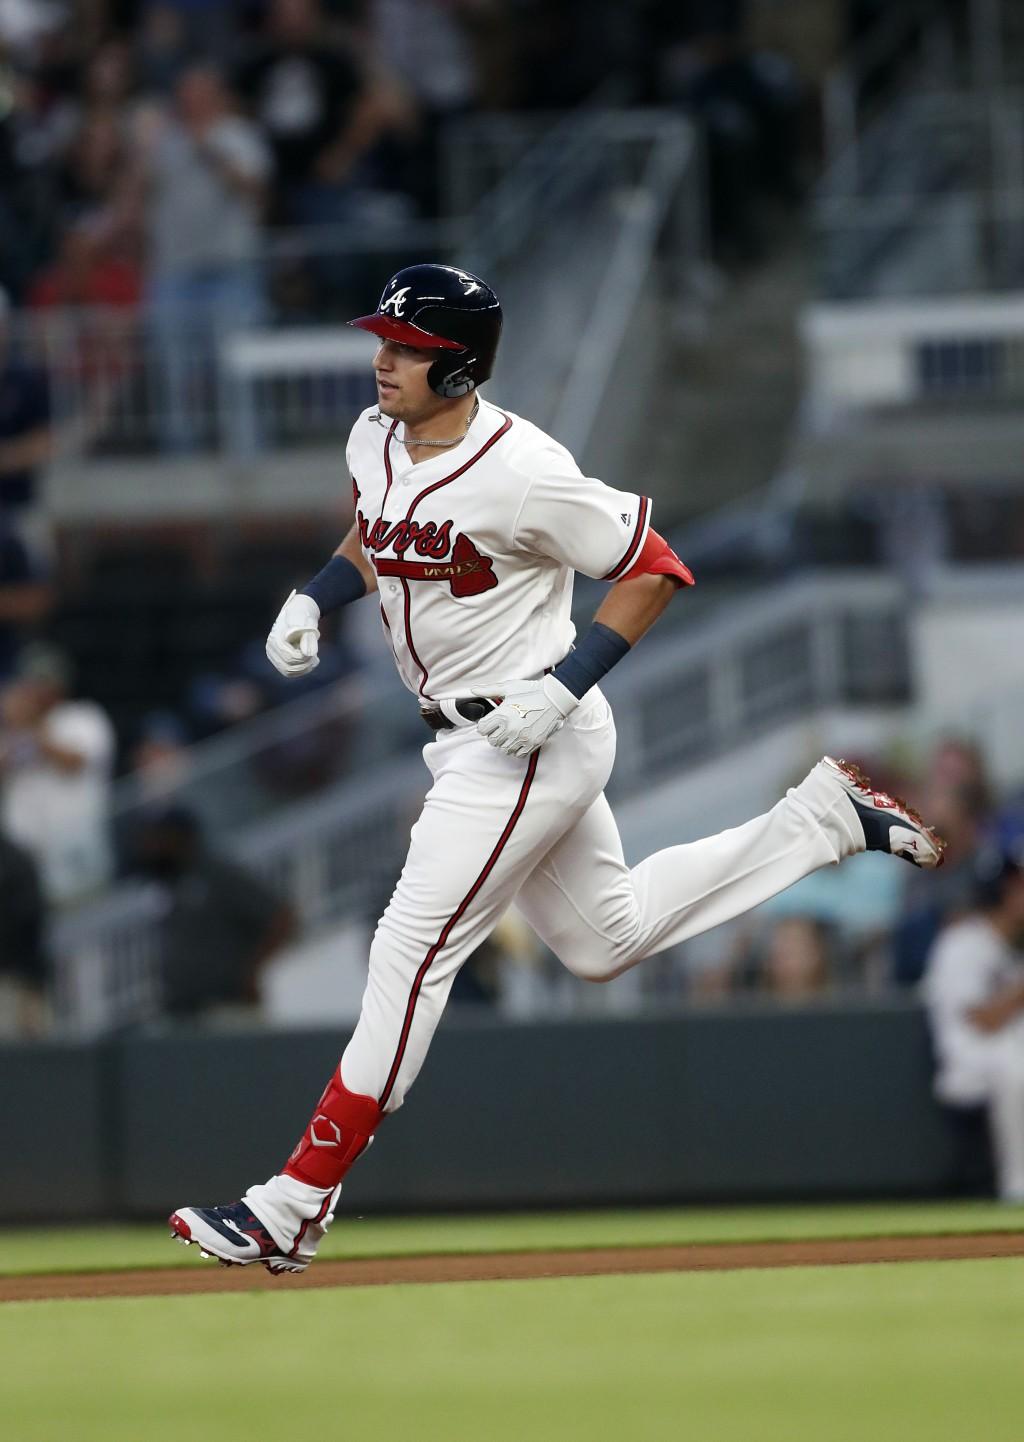 Atlanta Braves' rookie Austin Riley rounds the bases after hitting a home run in the fourth inning of a baseball game against the St. Louis Cardinals ...